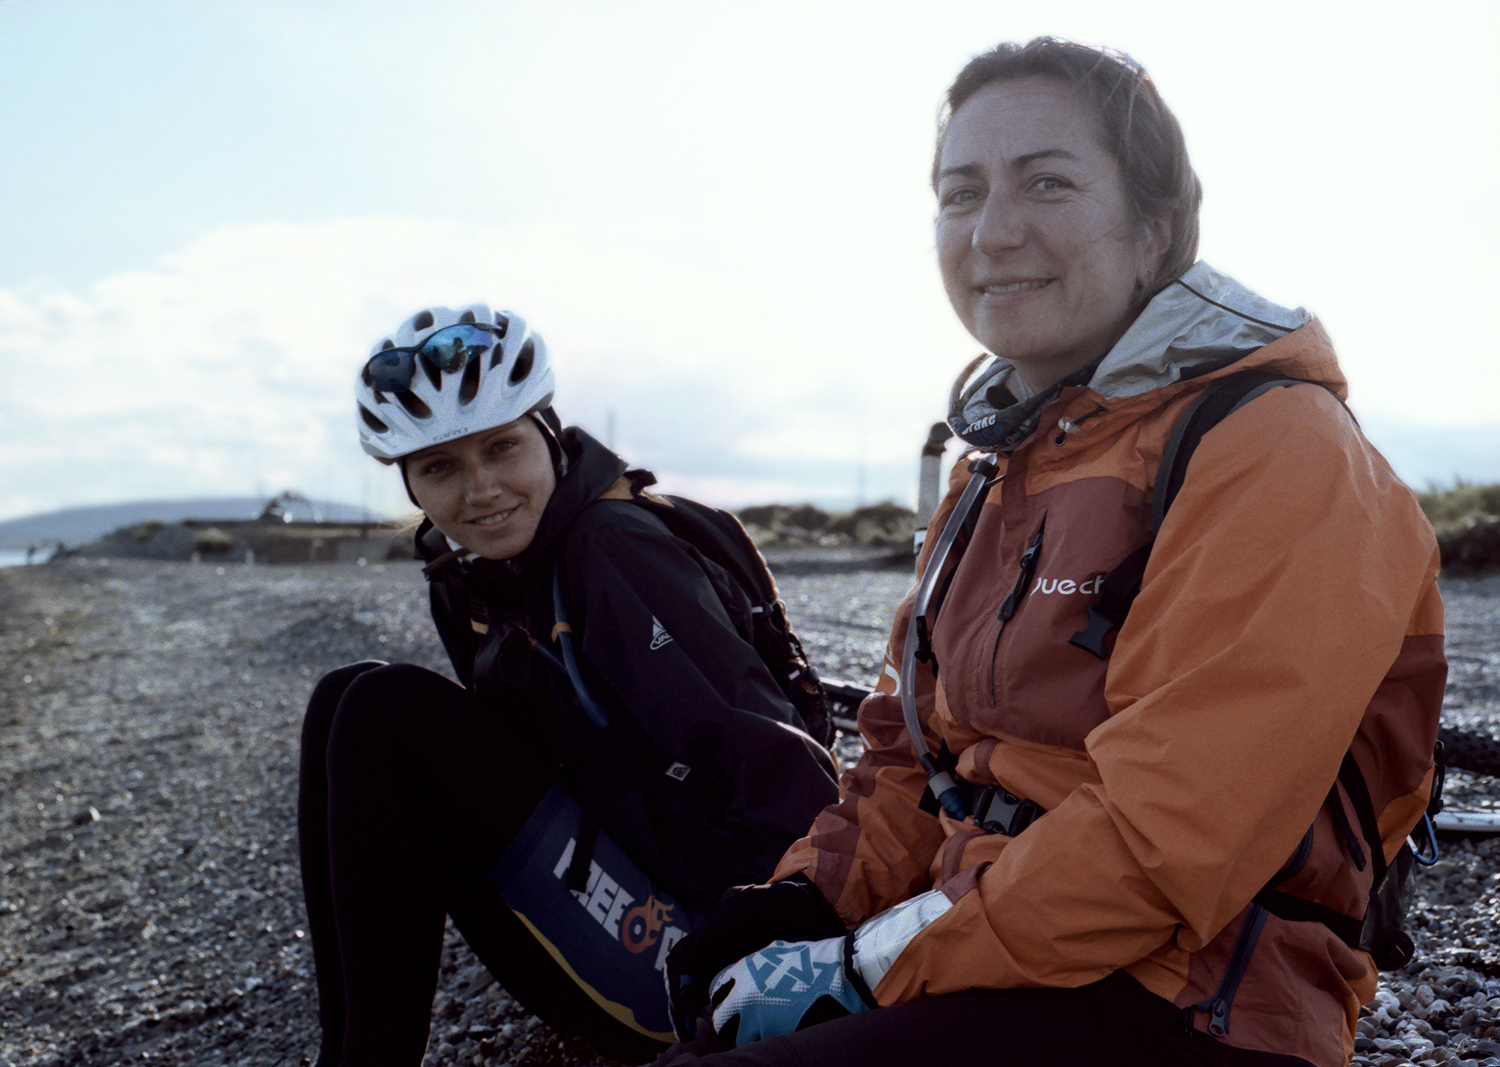 Kristina and Pascal, Pebble Shore, Patagonia, Chile, South America, 2012